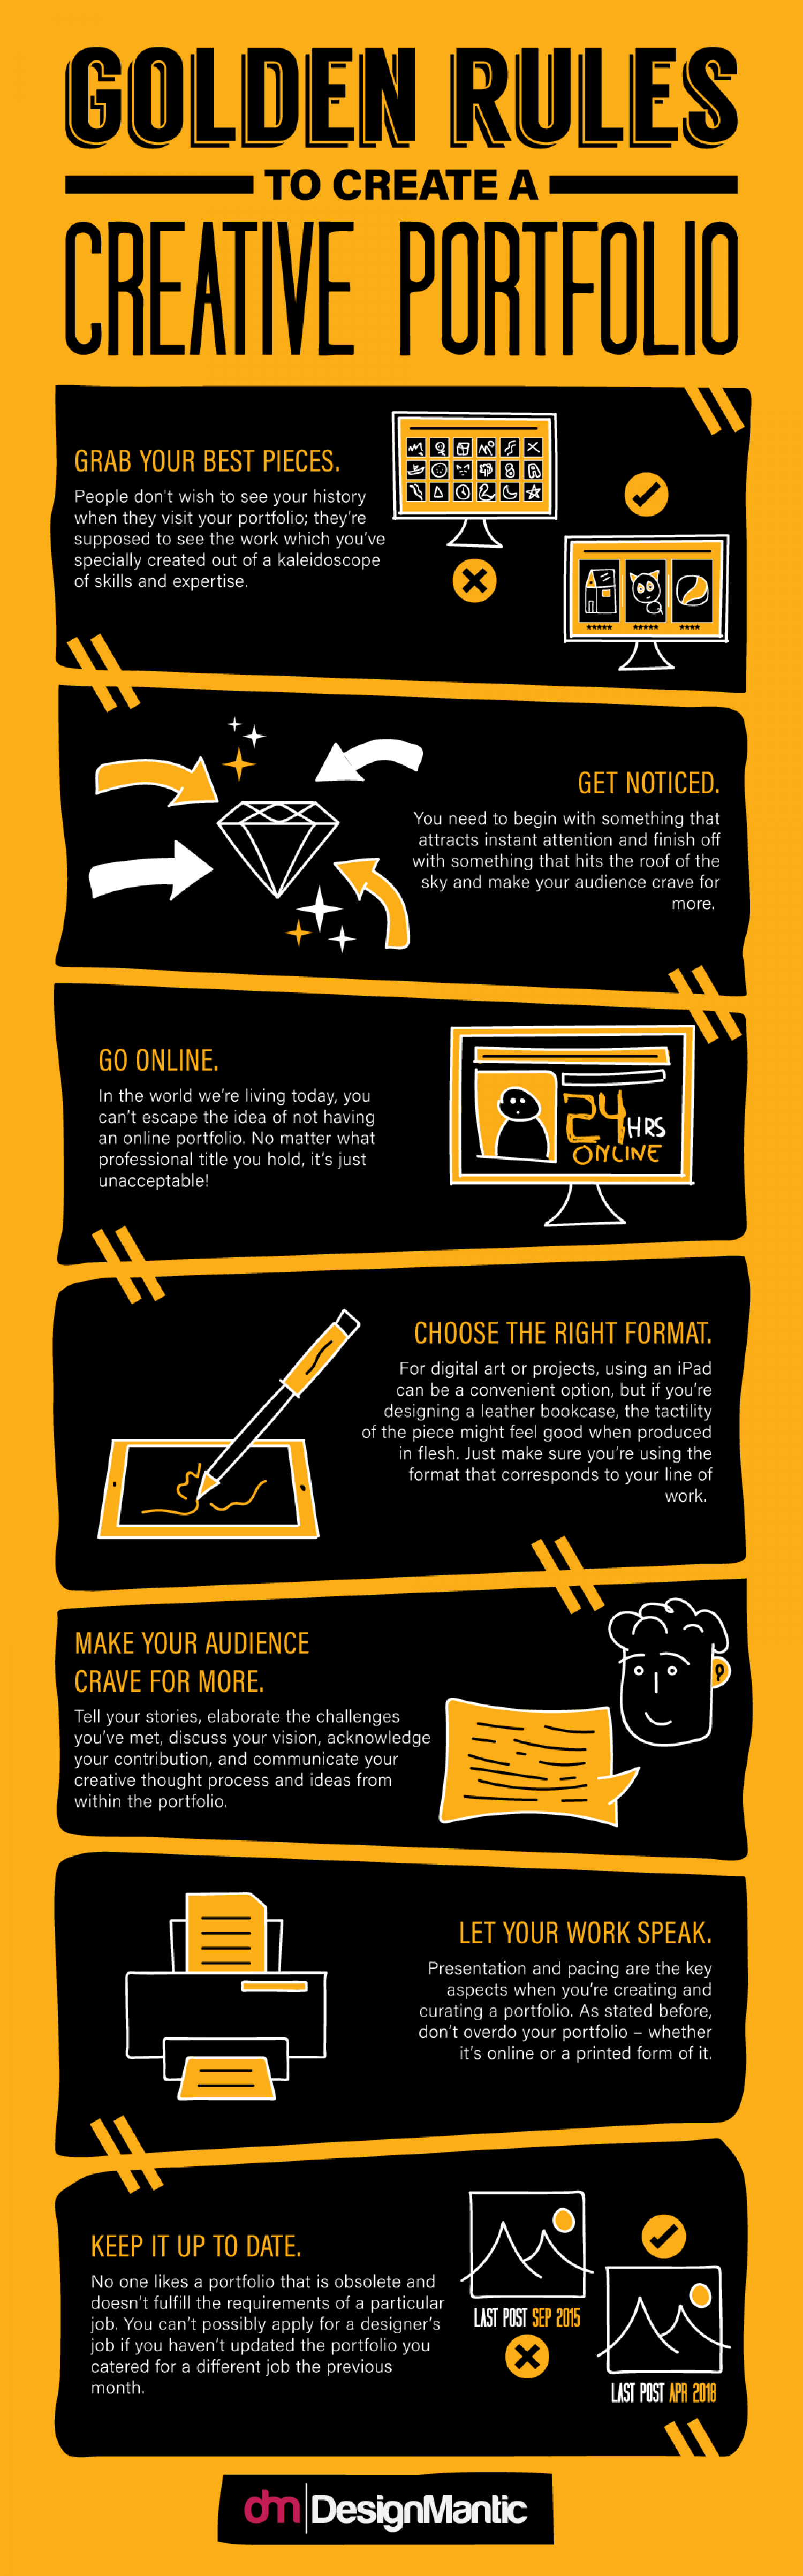 Golden Rules To Create A Creative Portfolio Infographic